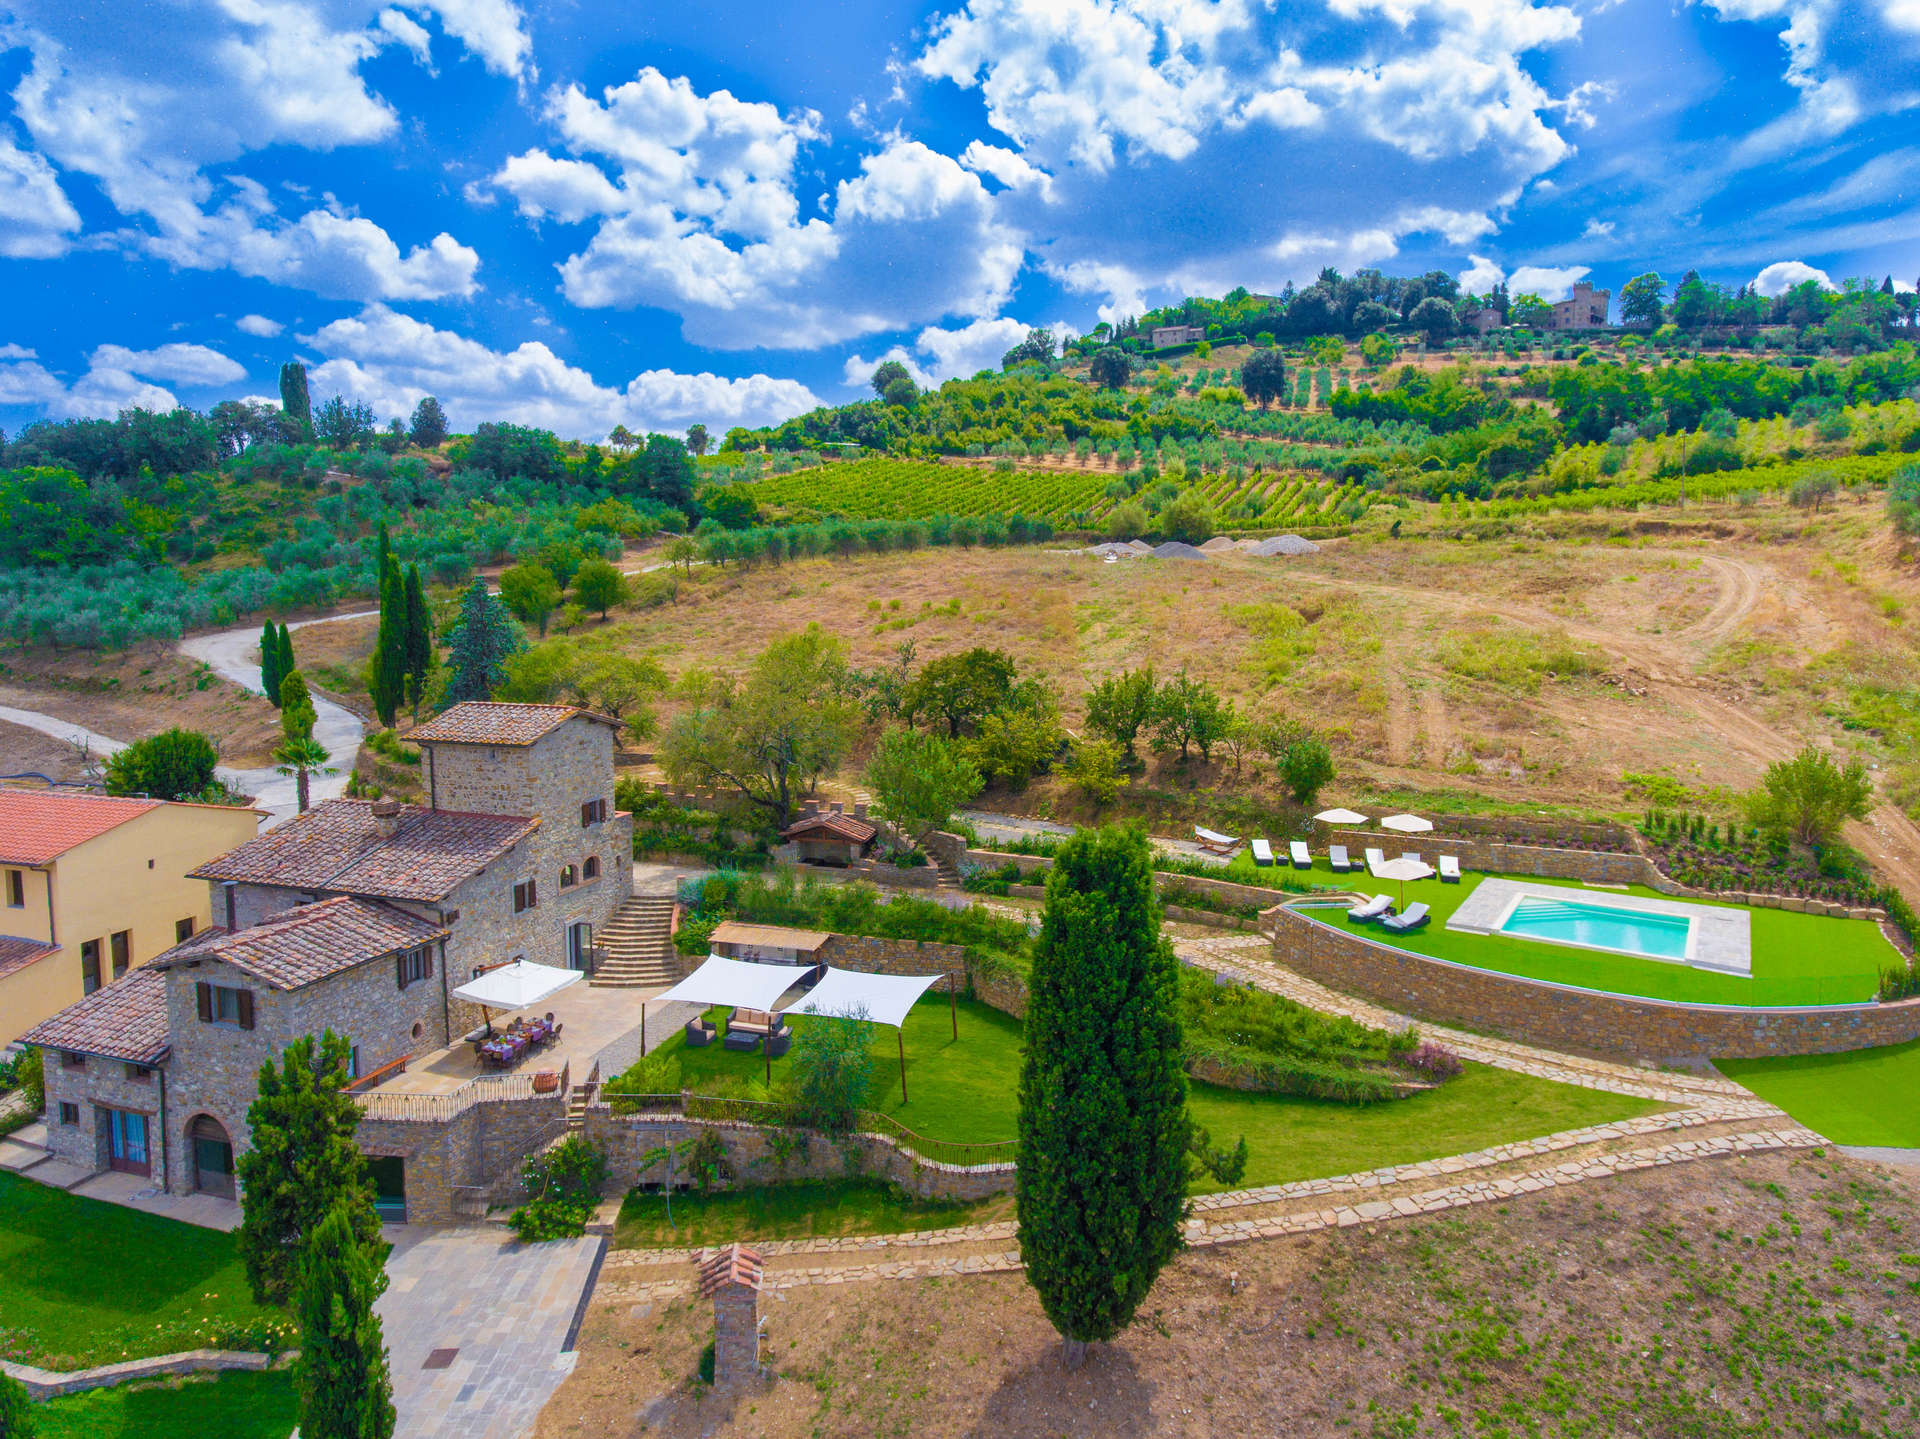 Luxury vacation rentals europe - Italy - Tuscany - Chia nti - Fleda - Image 1/25